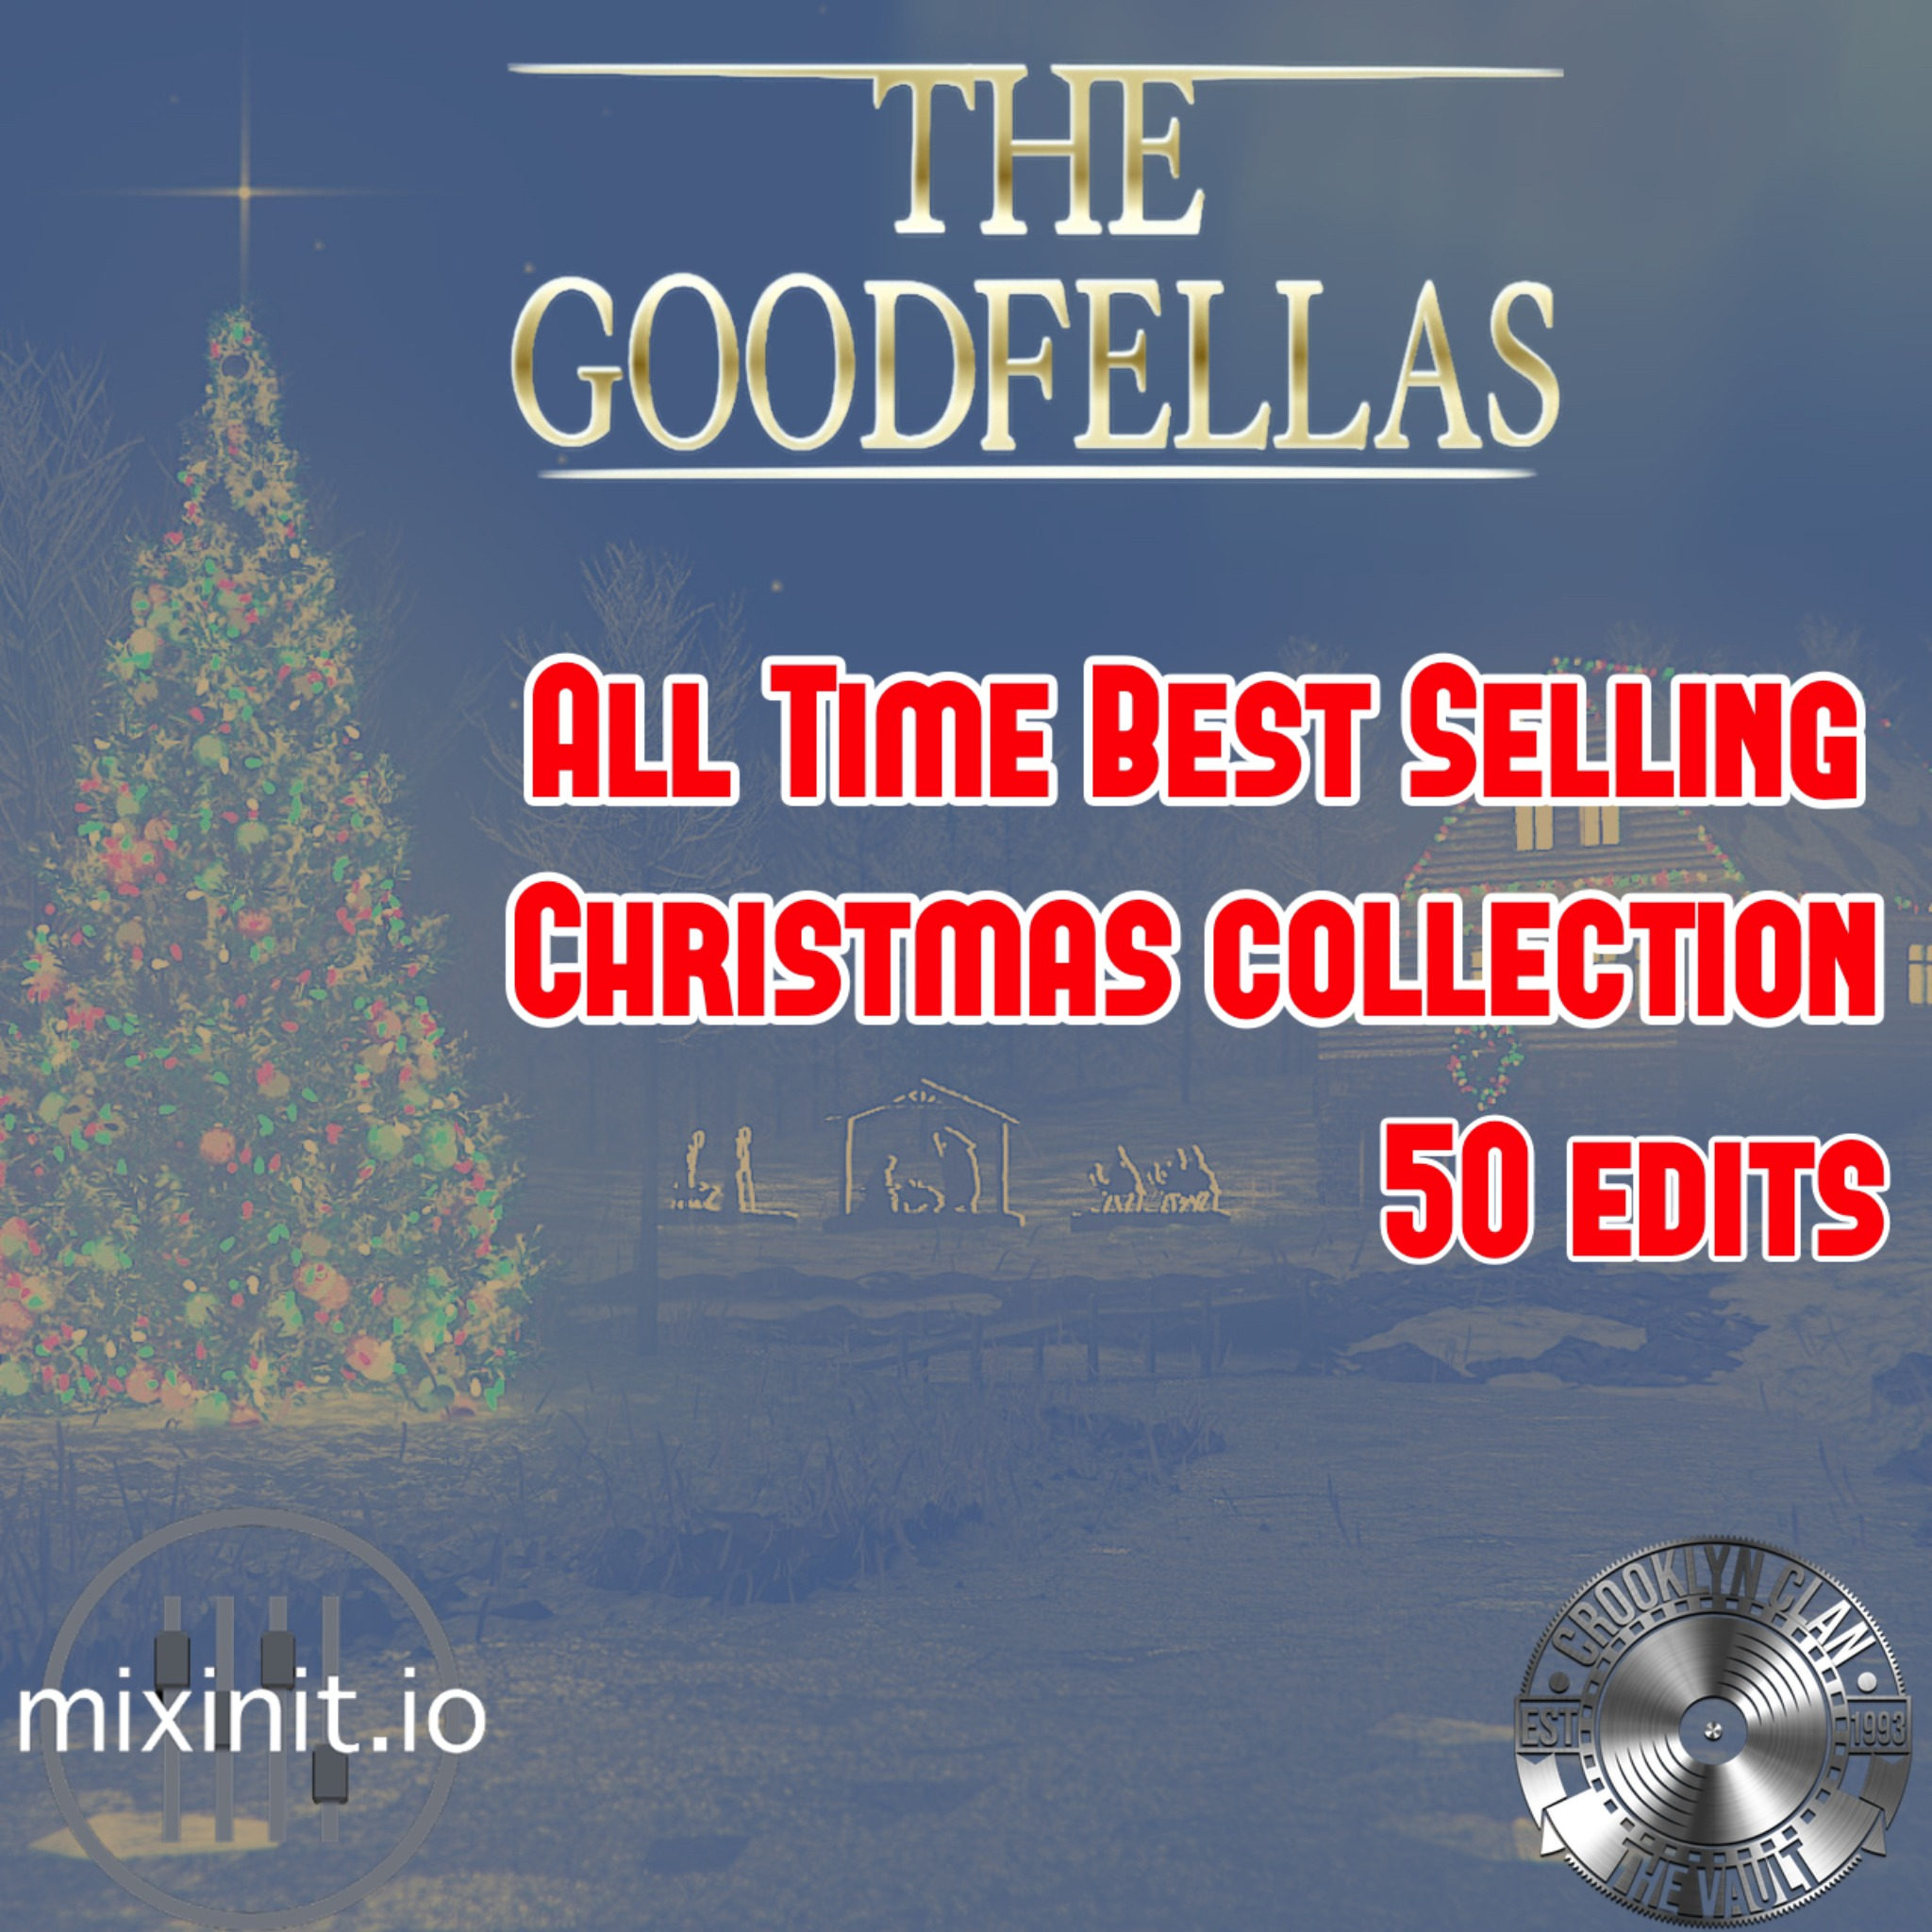 The Goodfellas - All Time Best Christmas Movers (50 Edits)